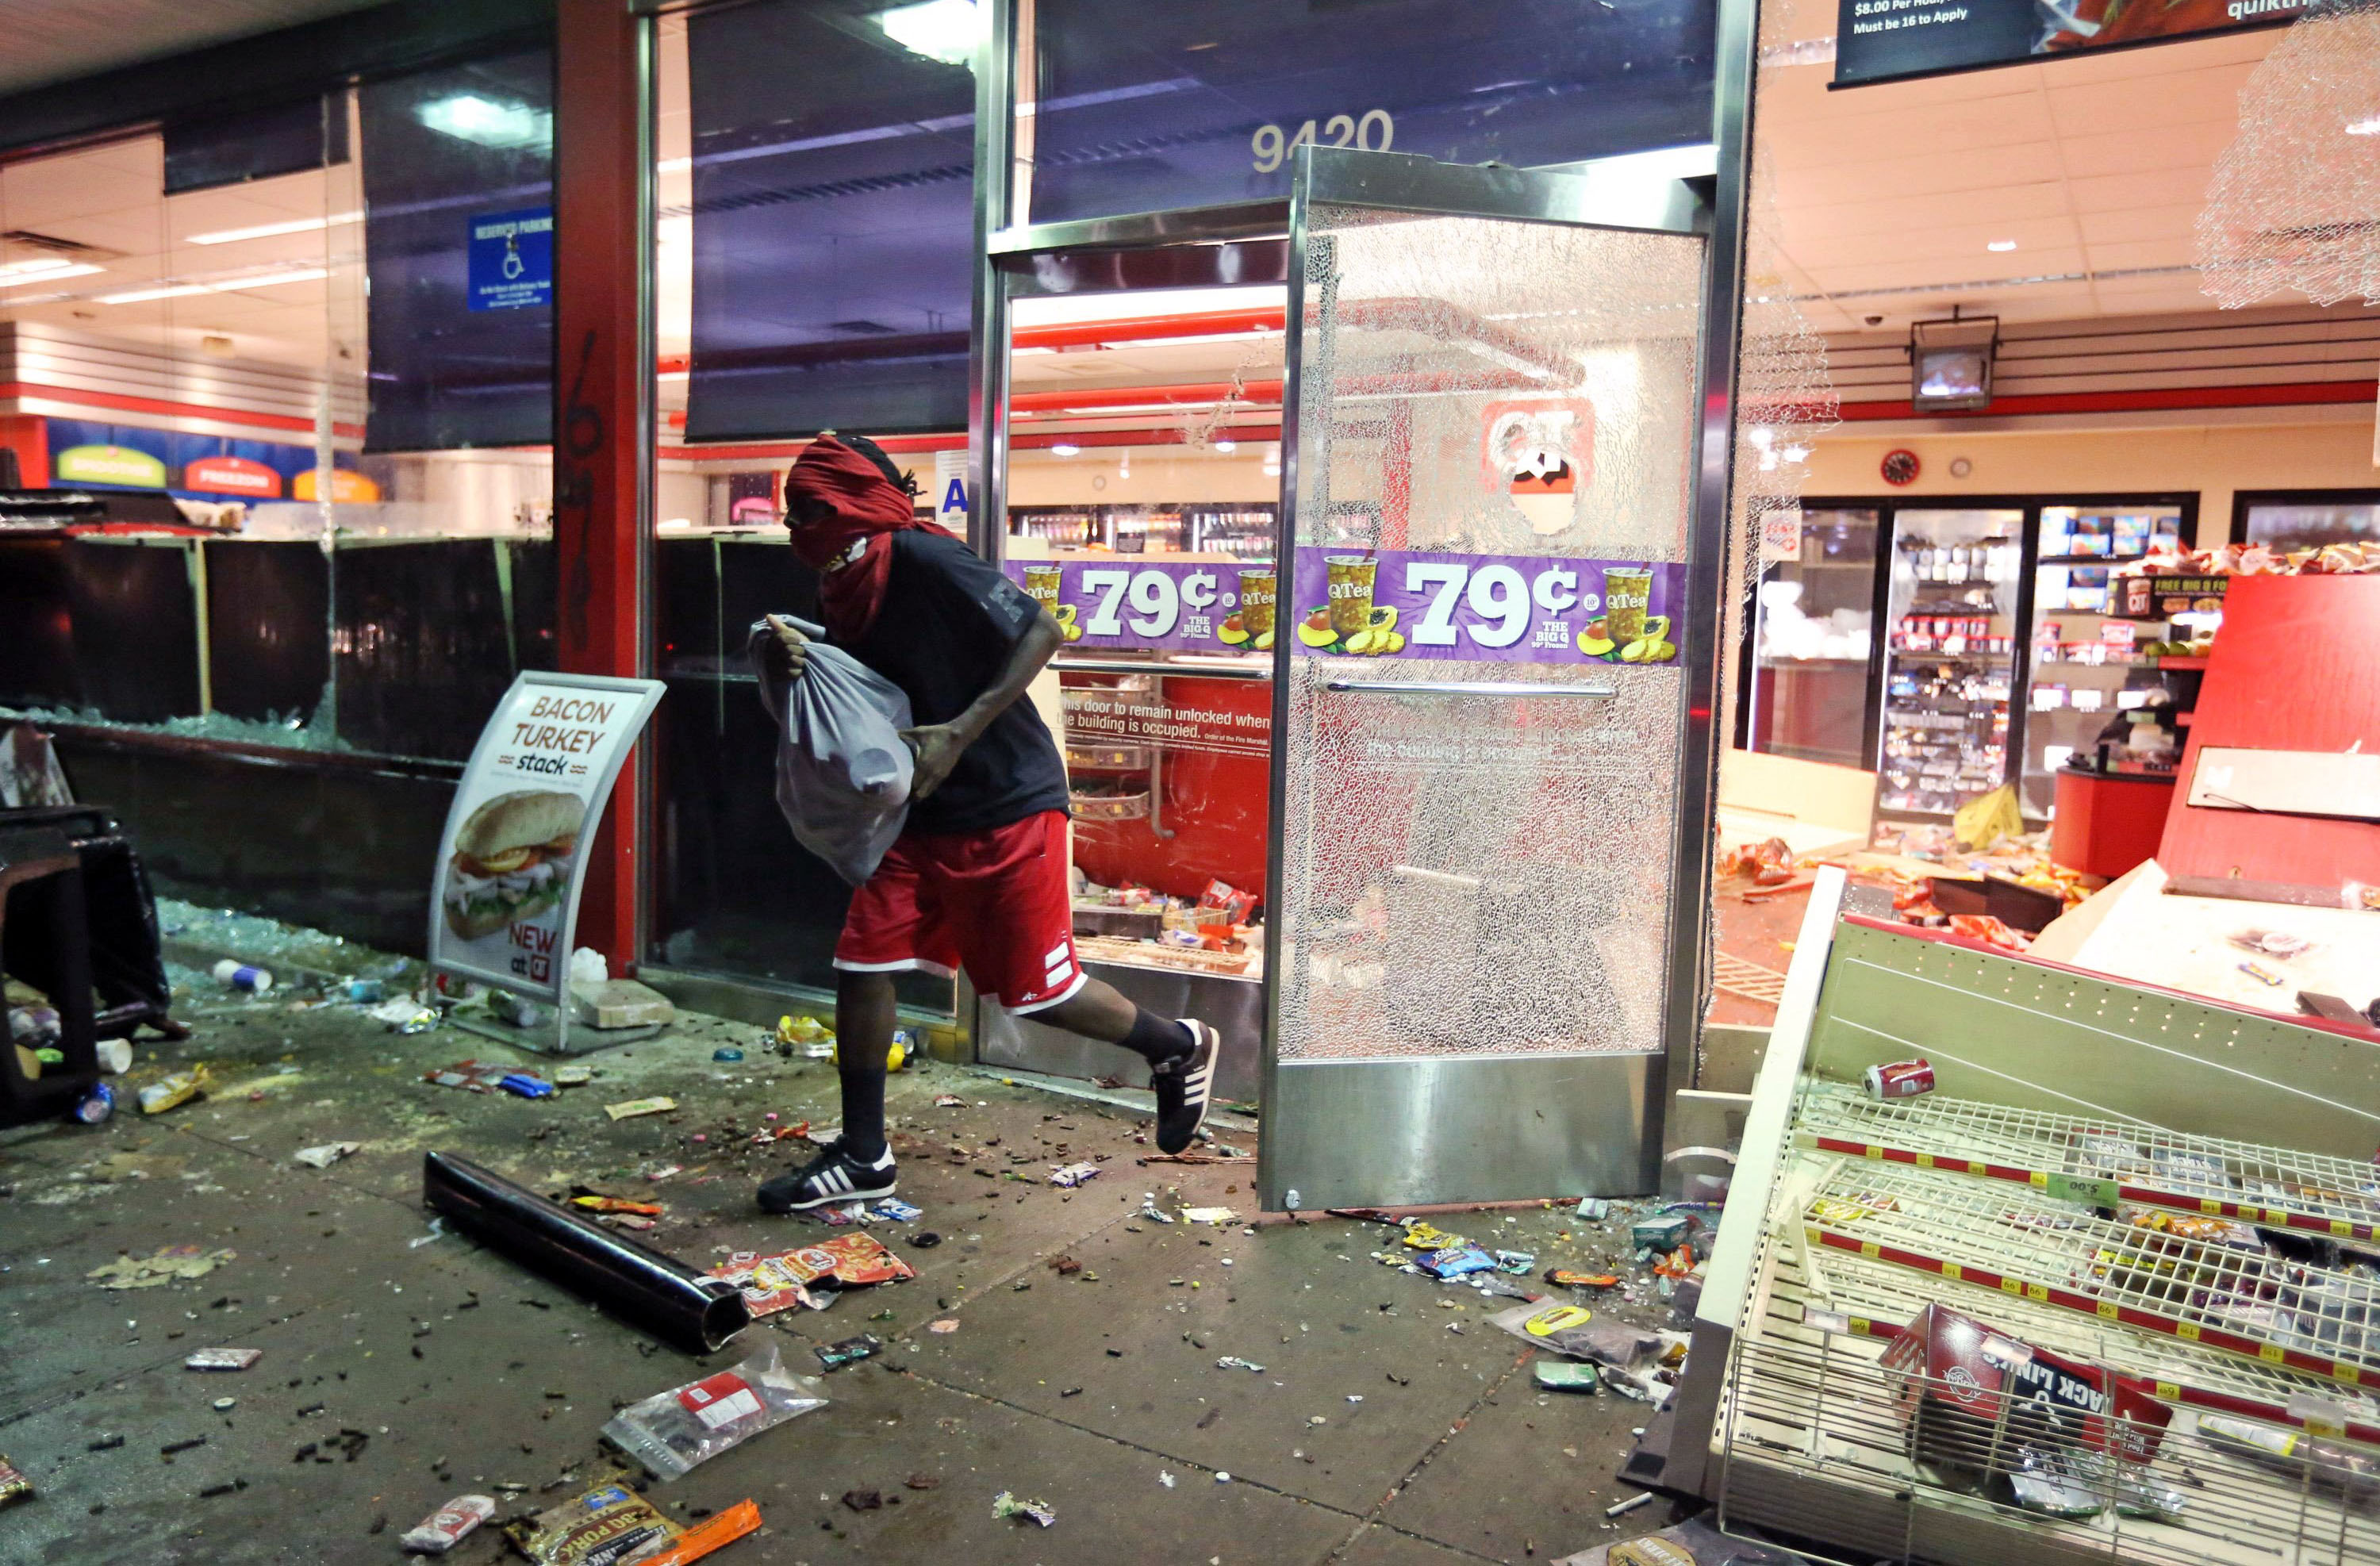 A man leaves a store with stolen merchandise in Ferguson, Mo. on Aug. 10, 2014.